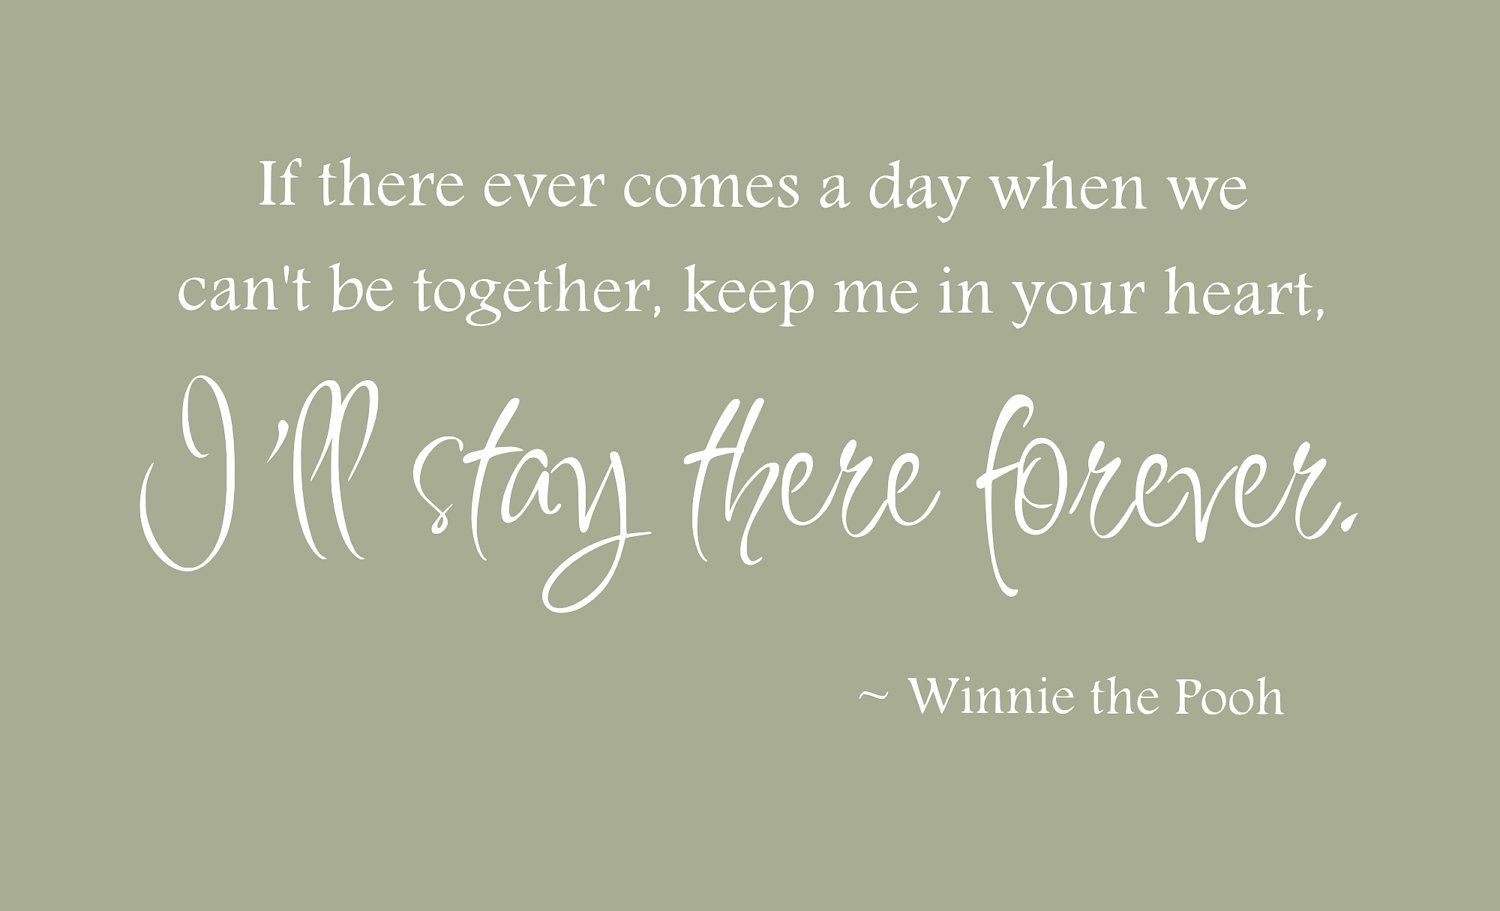 Winnie the pooh quote vinyl wall decal if there ever comes a day winnie the pooh quote vinyl wall decal if there ever comes a day when we amipublicfo Images